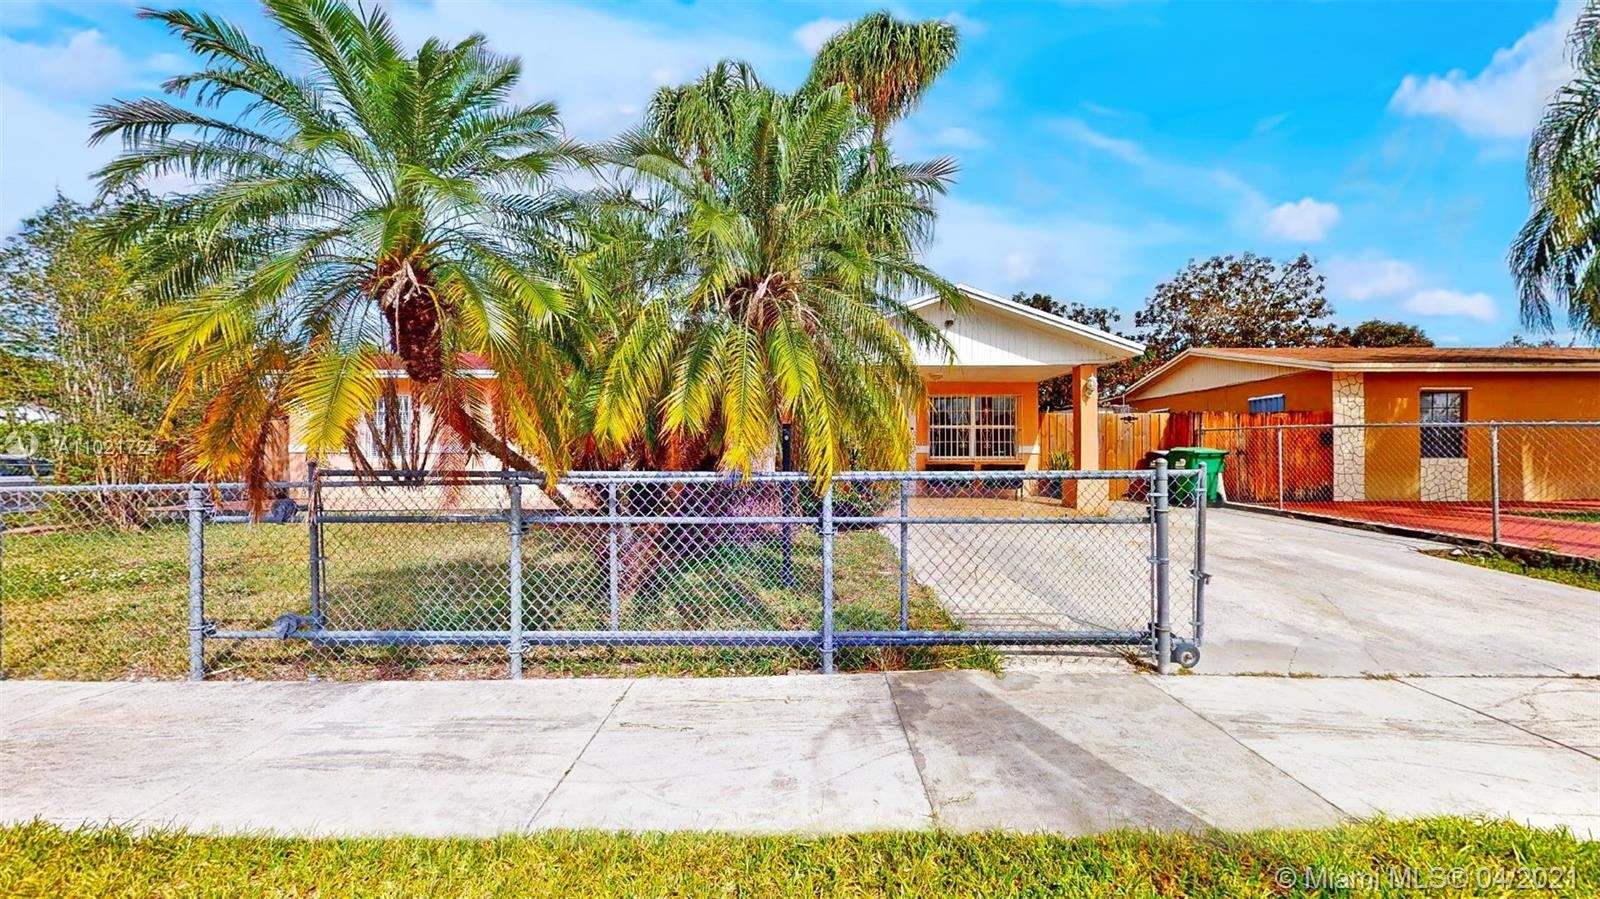 30705 SW 154th Ave, Homestead, FL 33033 - #: A11021724